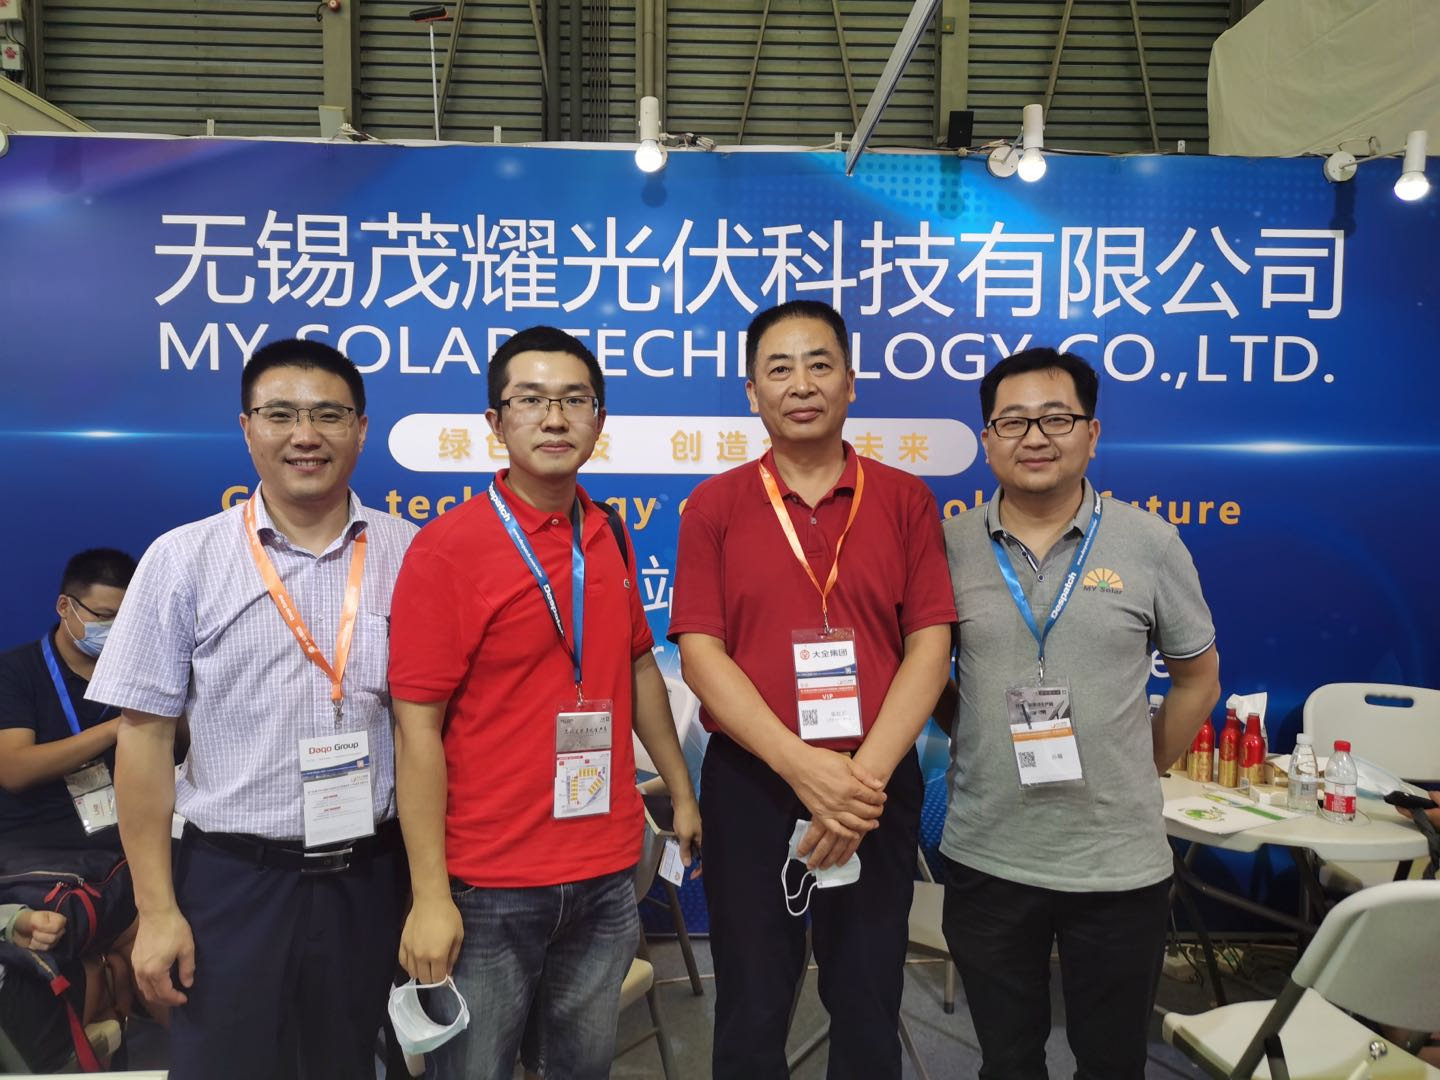 My Solar Technology Co., Ltd. SNEC2020 pv show